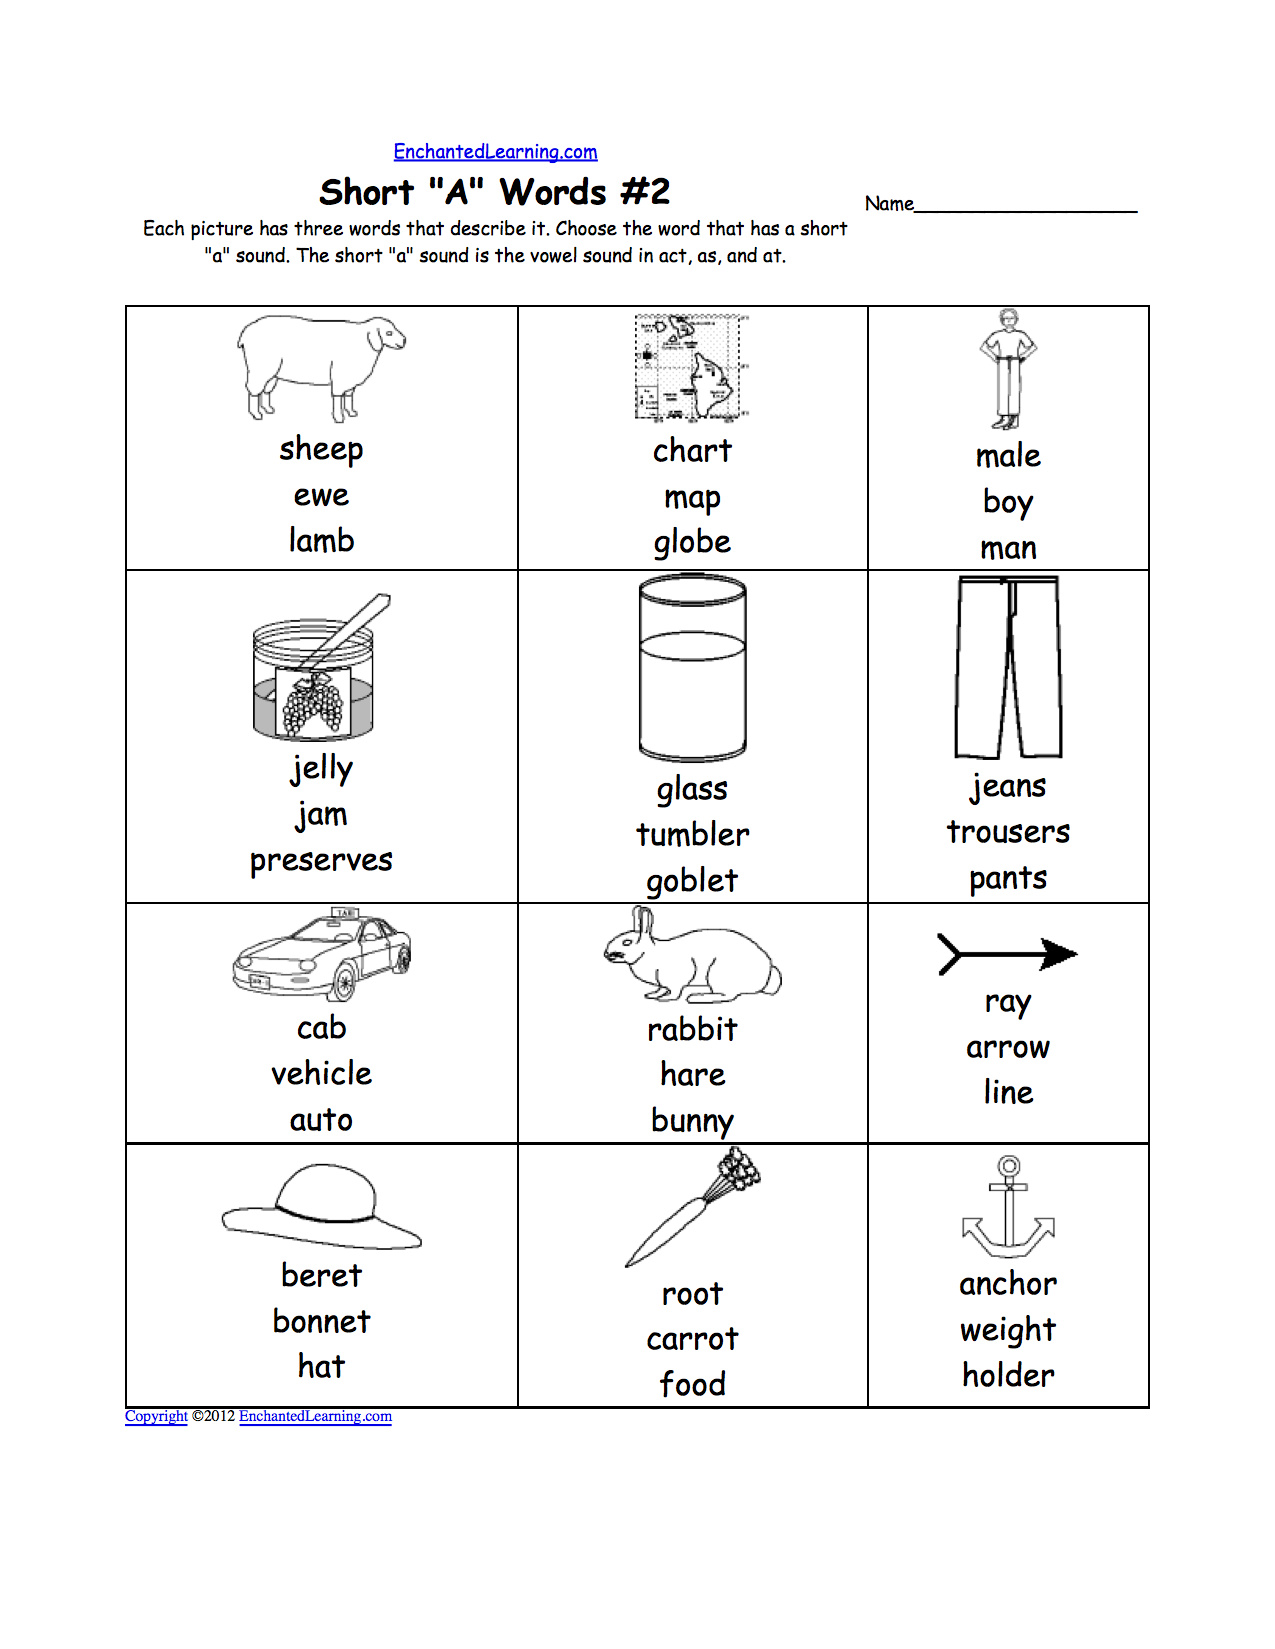 Worksheet Vowels Worksheets For Grade 2 long vowel sound worksheets abitlikethis short sounds u worksheet education com